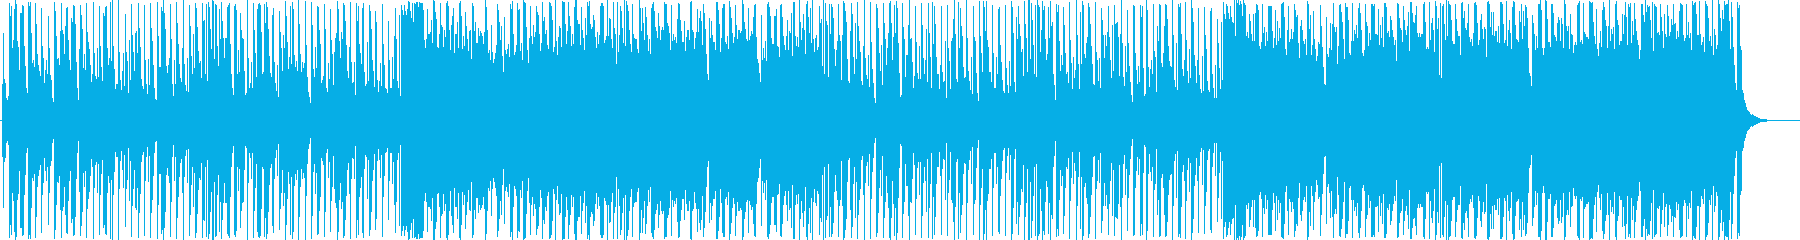 Christmas cute pop music's reproduced waveform